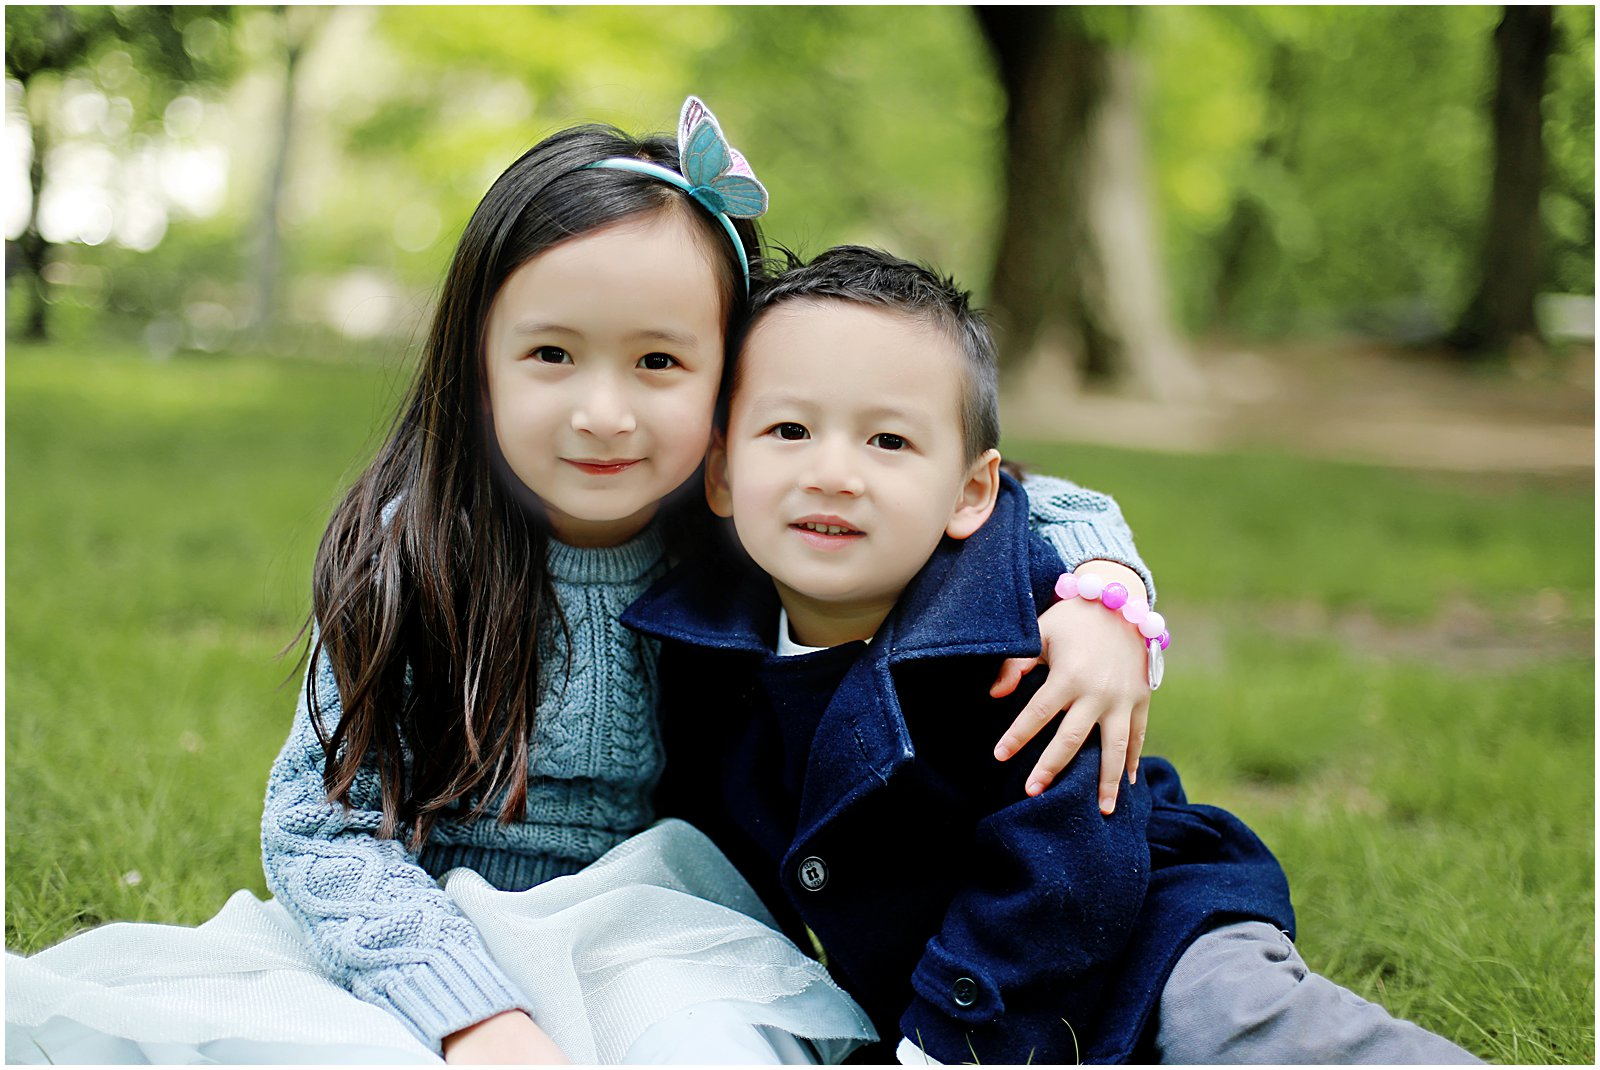 siblings photographed by childrens family photographer Helena Woods in New York NYC